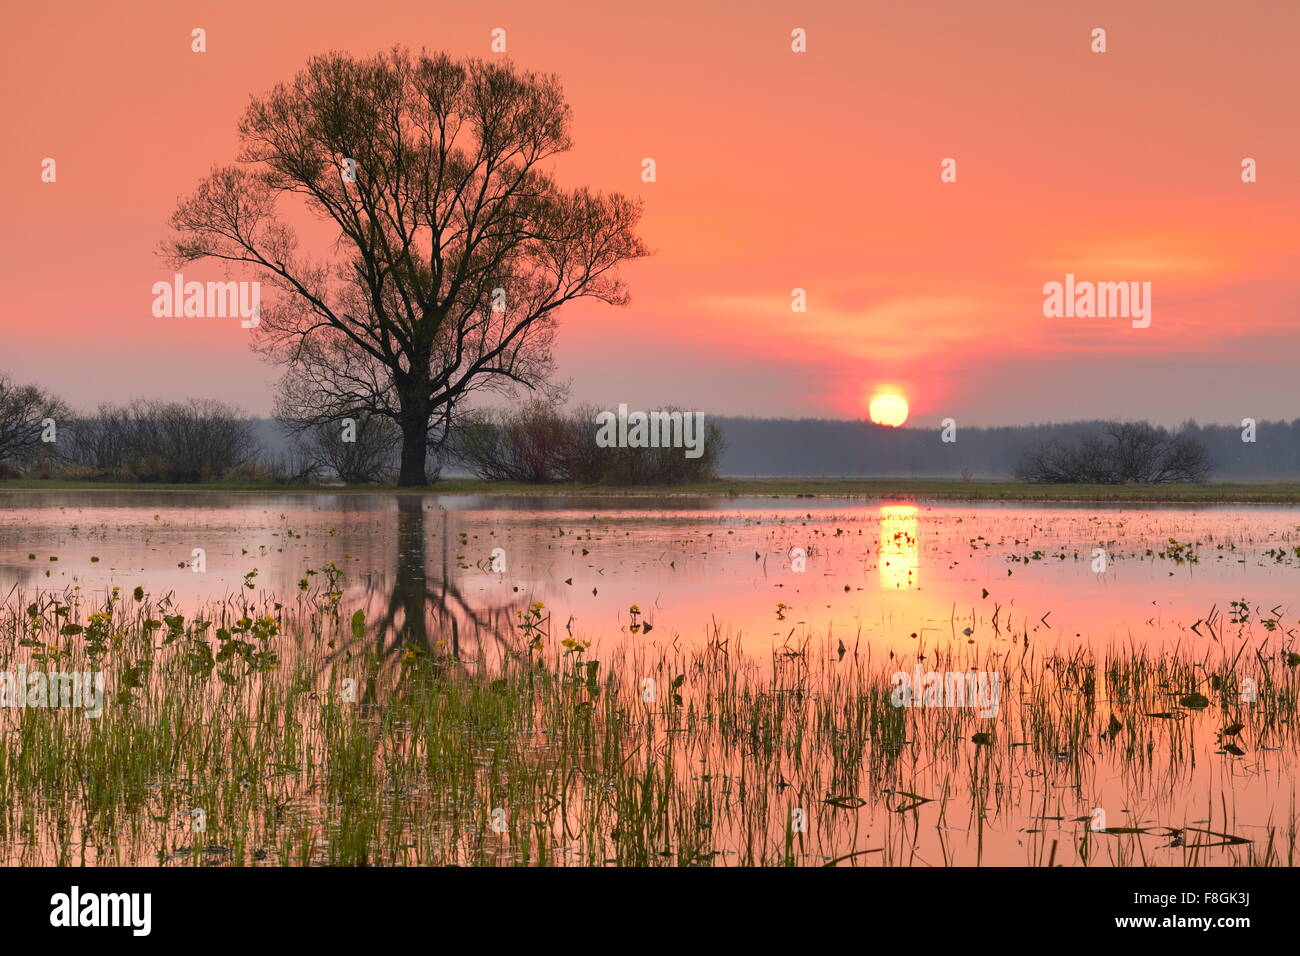 Sunrise landscape, Biebrza National Park, Poland - Stock Image